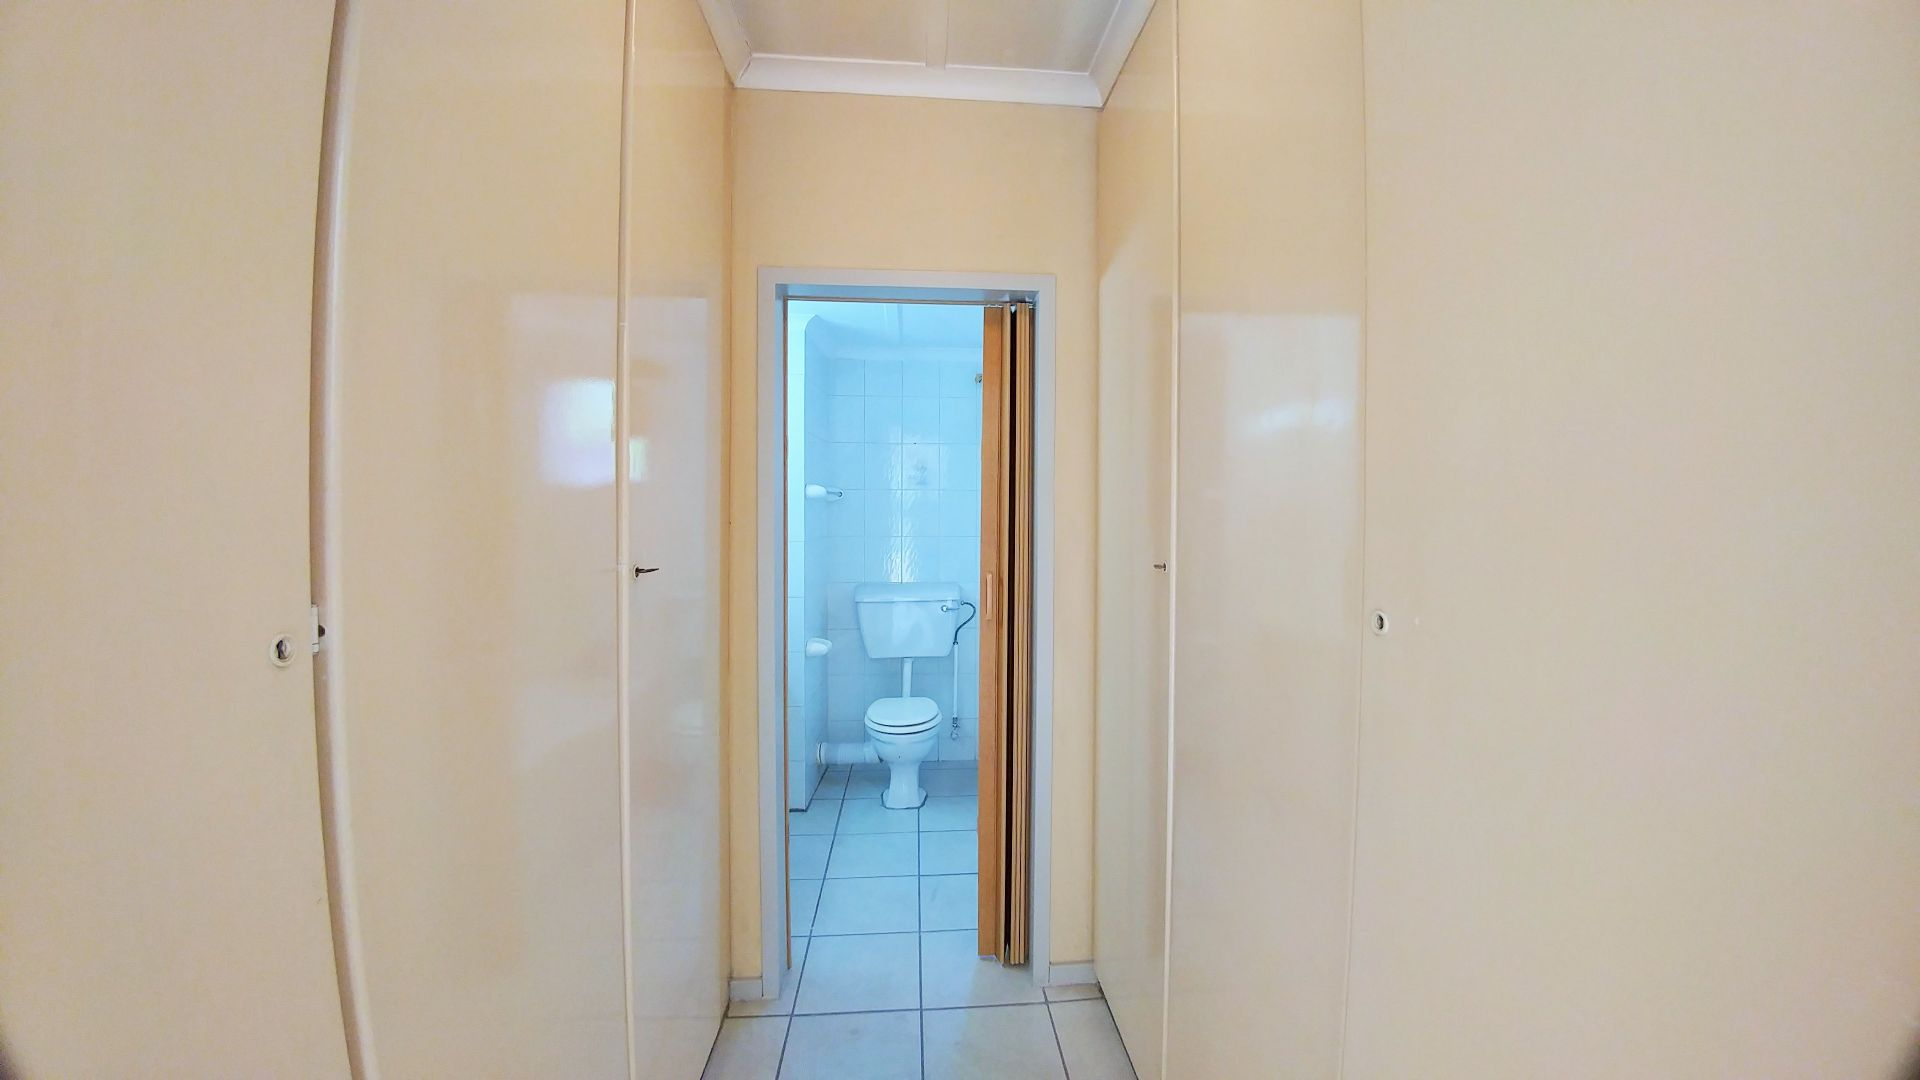 Potchefstroom Central property for sale. Ref No: 13547446. Picture no 20